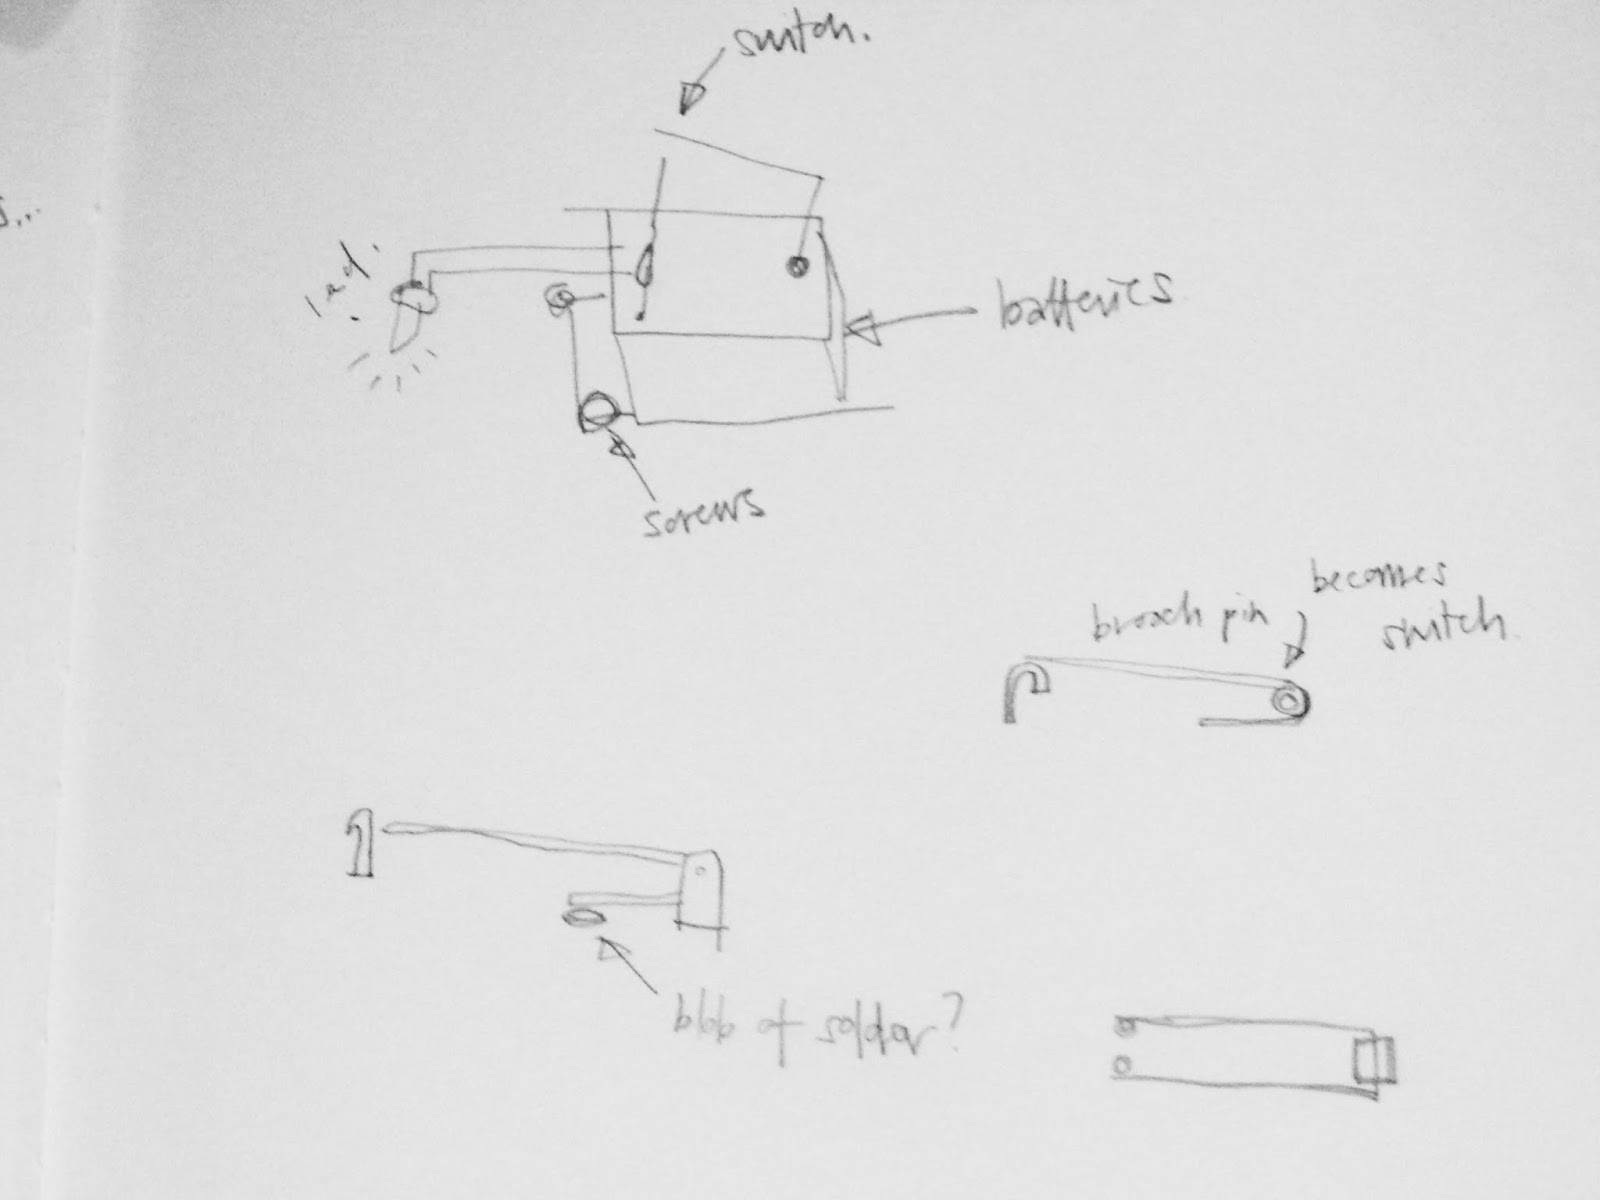 A glimps at a sketchbook which shows some diagrams of how to make a brooch pin into a switch for an eletrical circuit,